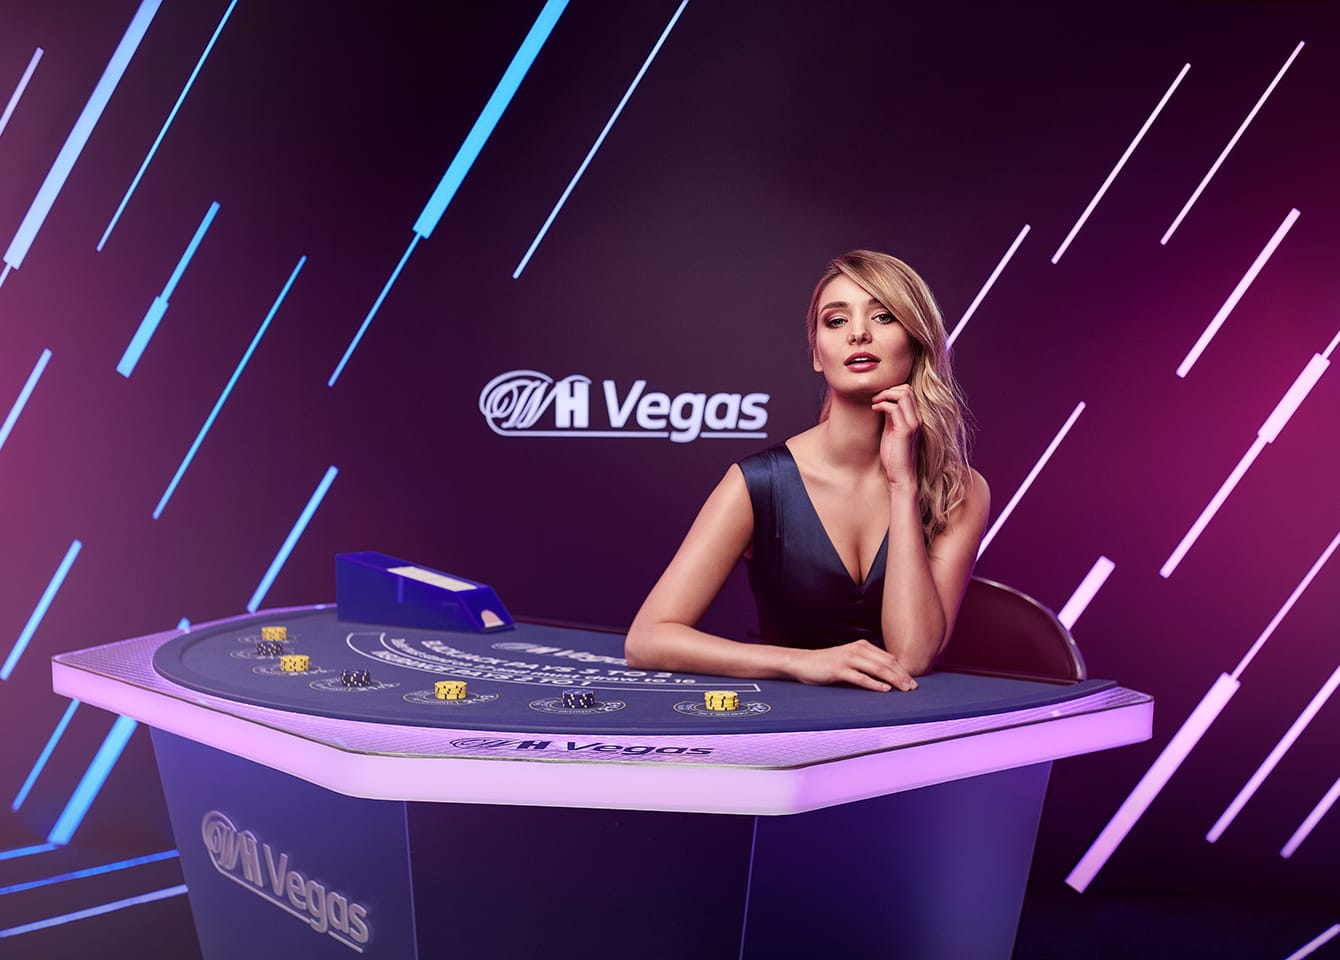 william hill вегас